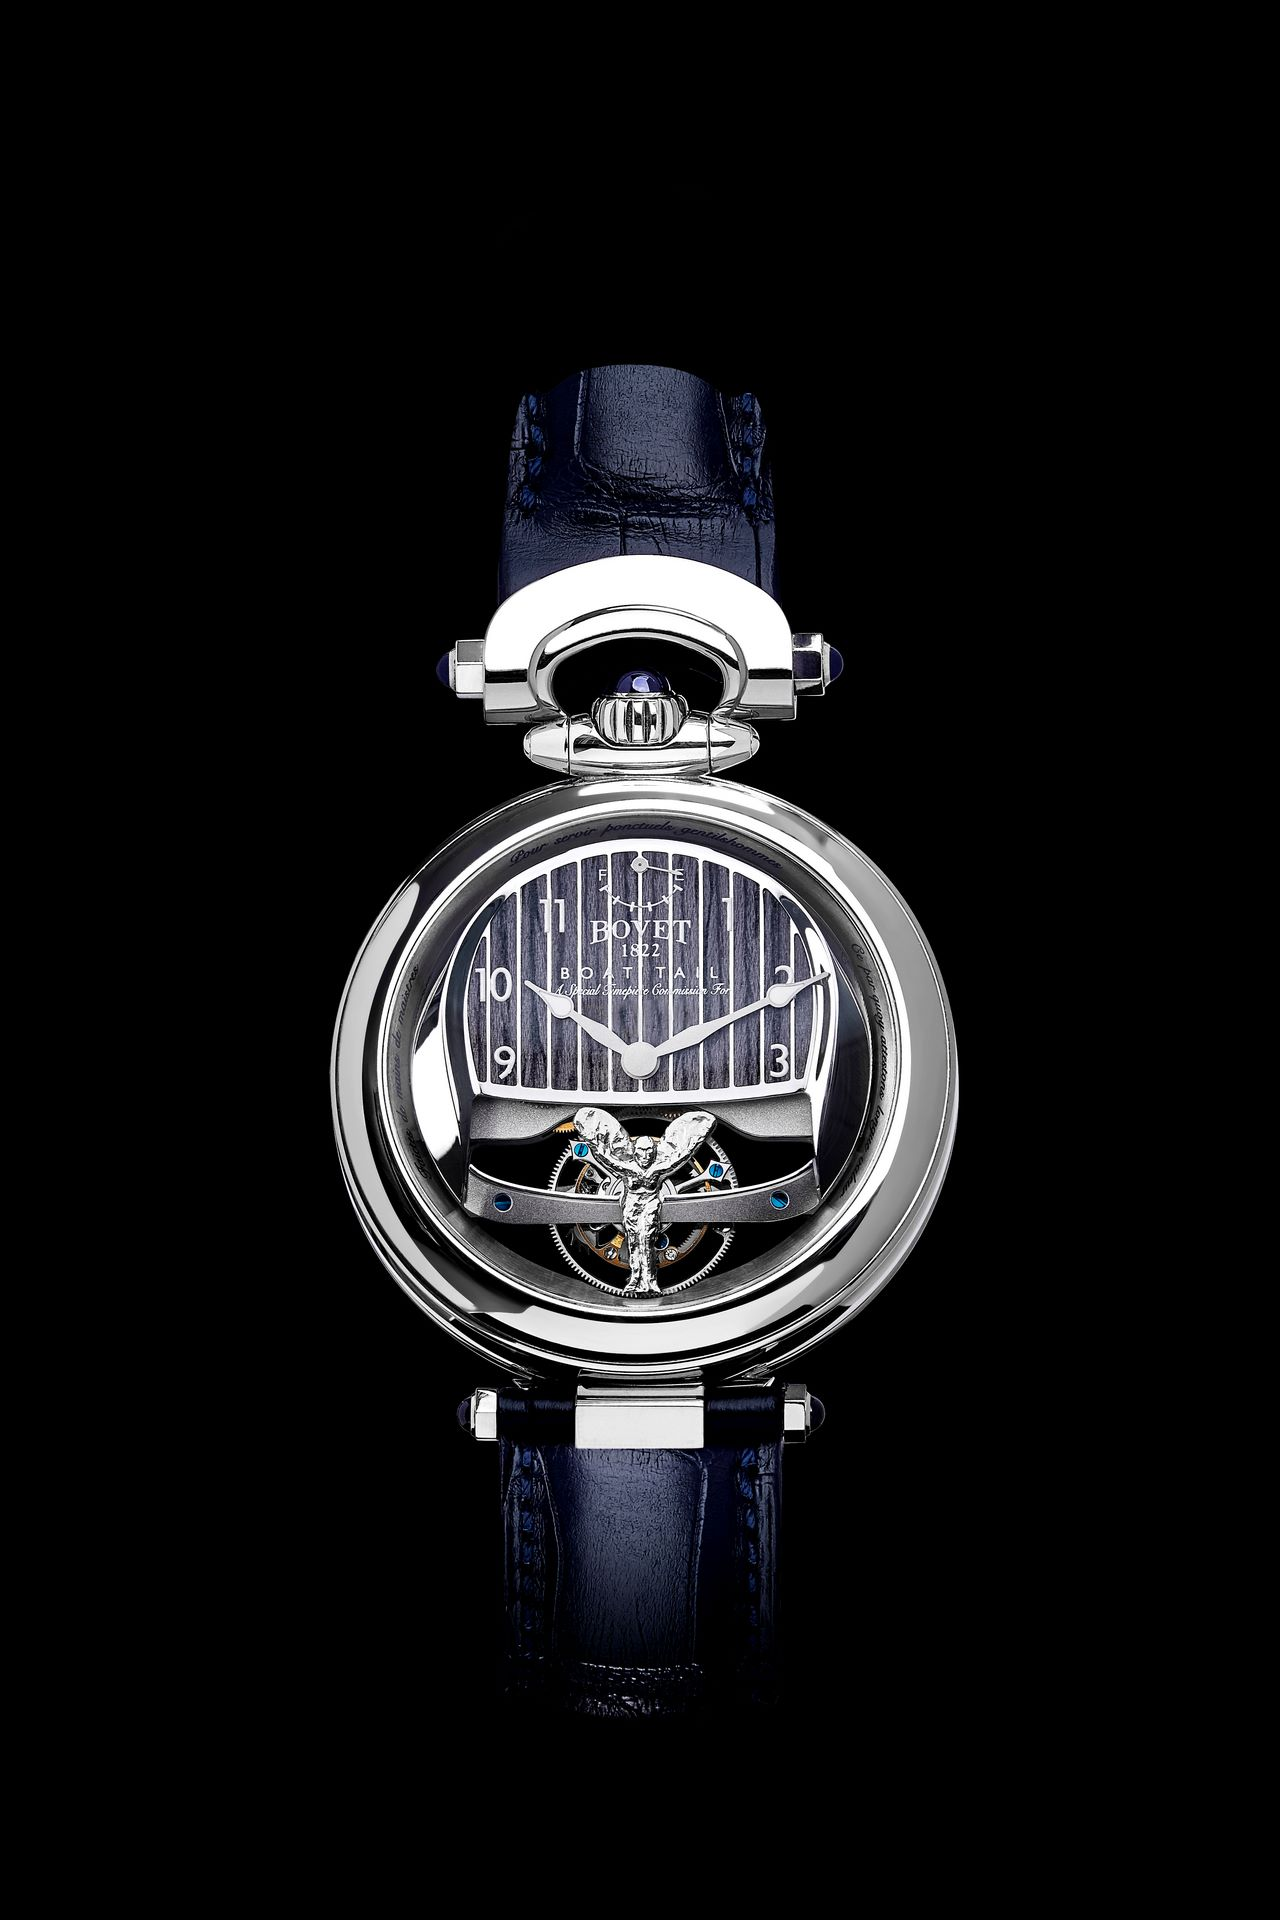 Rolls-Royce-Boat-Tail-Bovet-1822-Watches-9